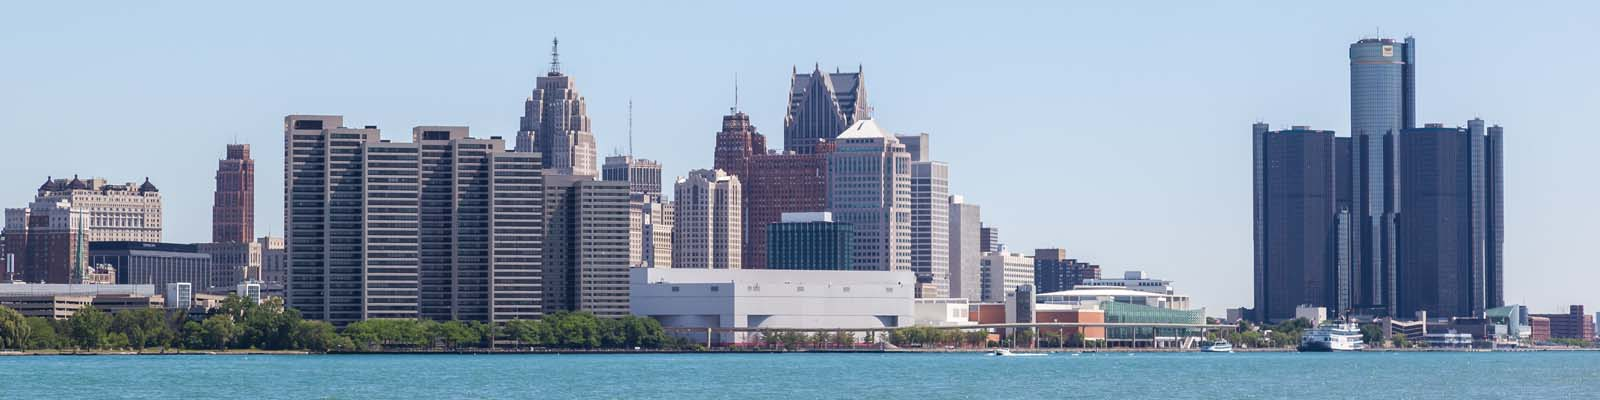 This is a cityscape image of Detroit Michigan where ASTA-USA provides professional translation services.